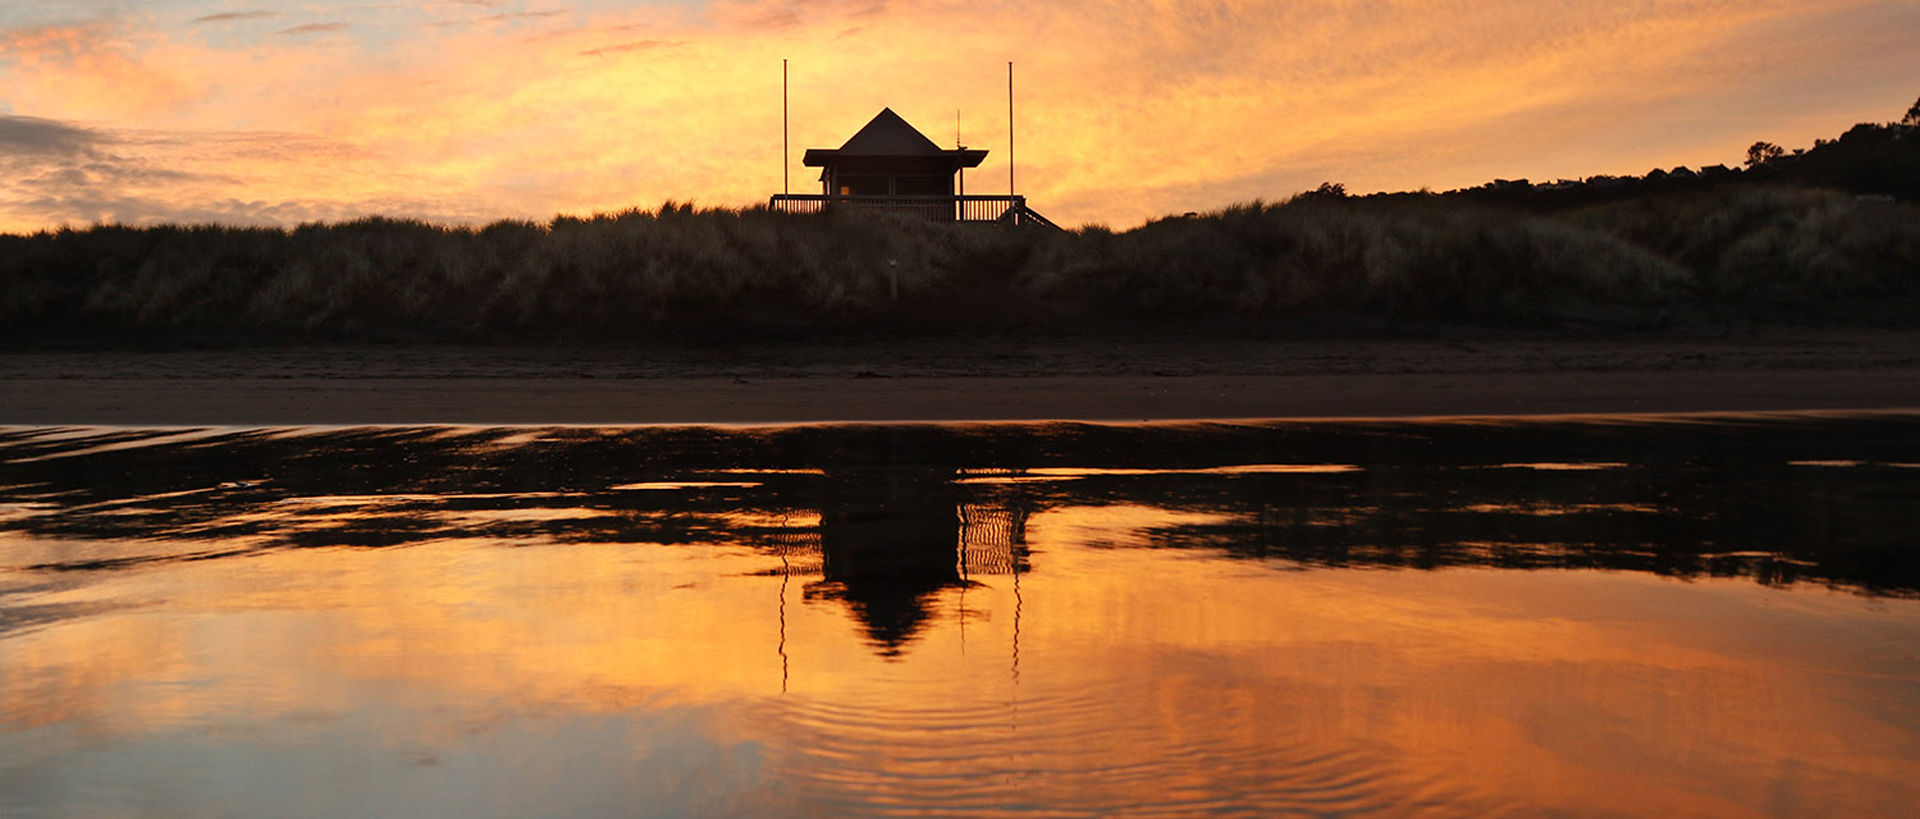 Surf Tower at Sunset